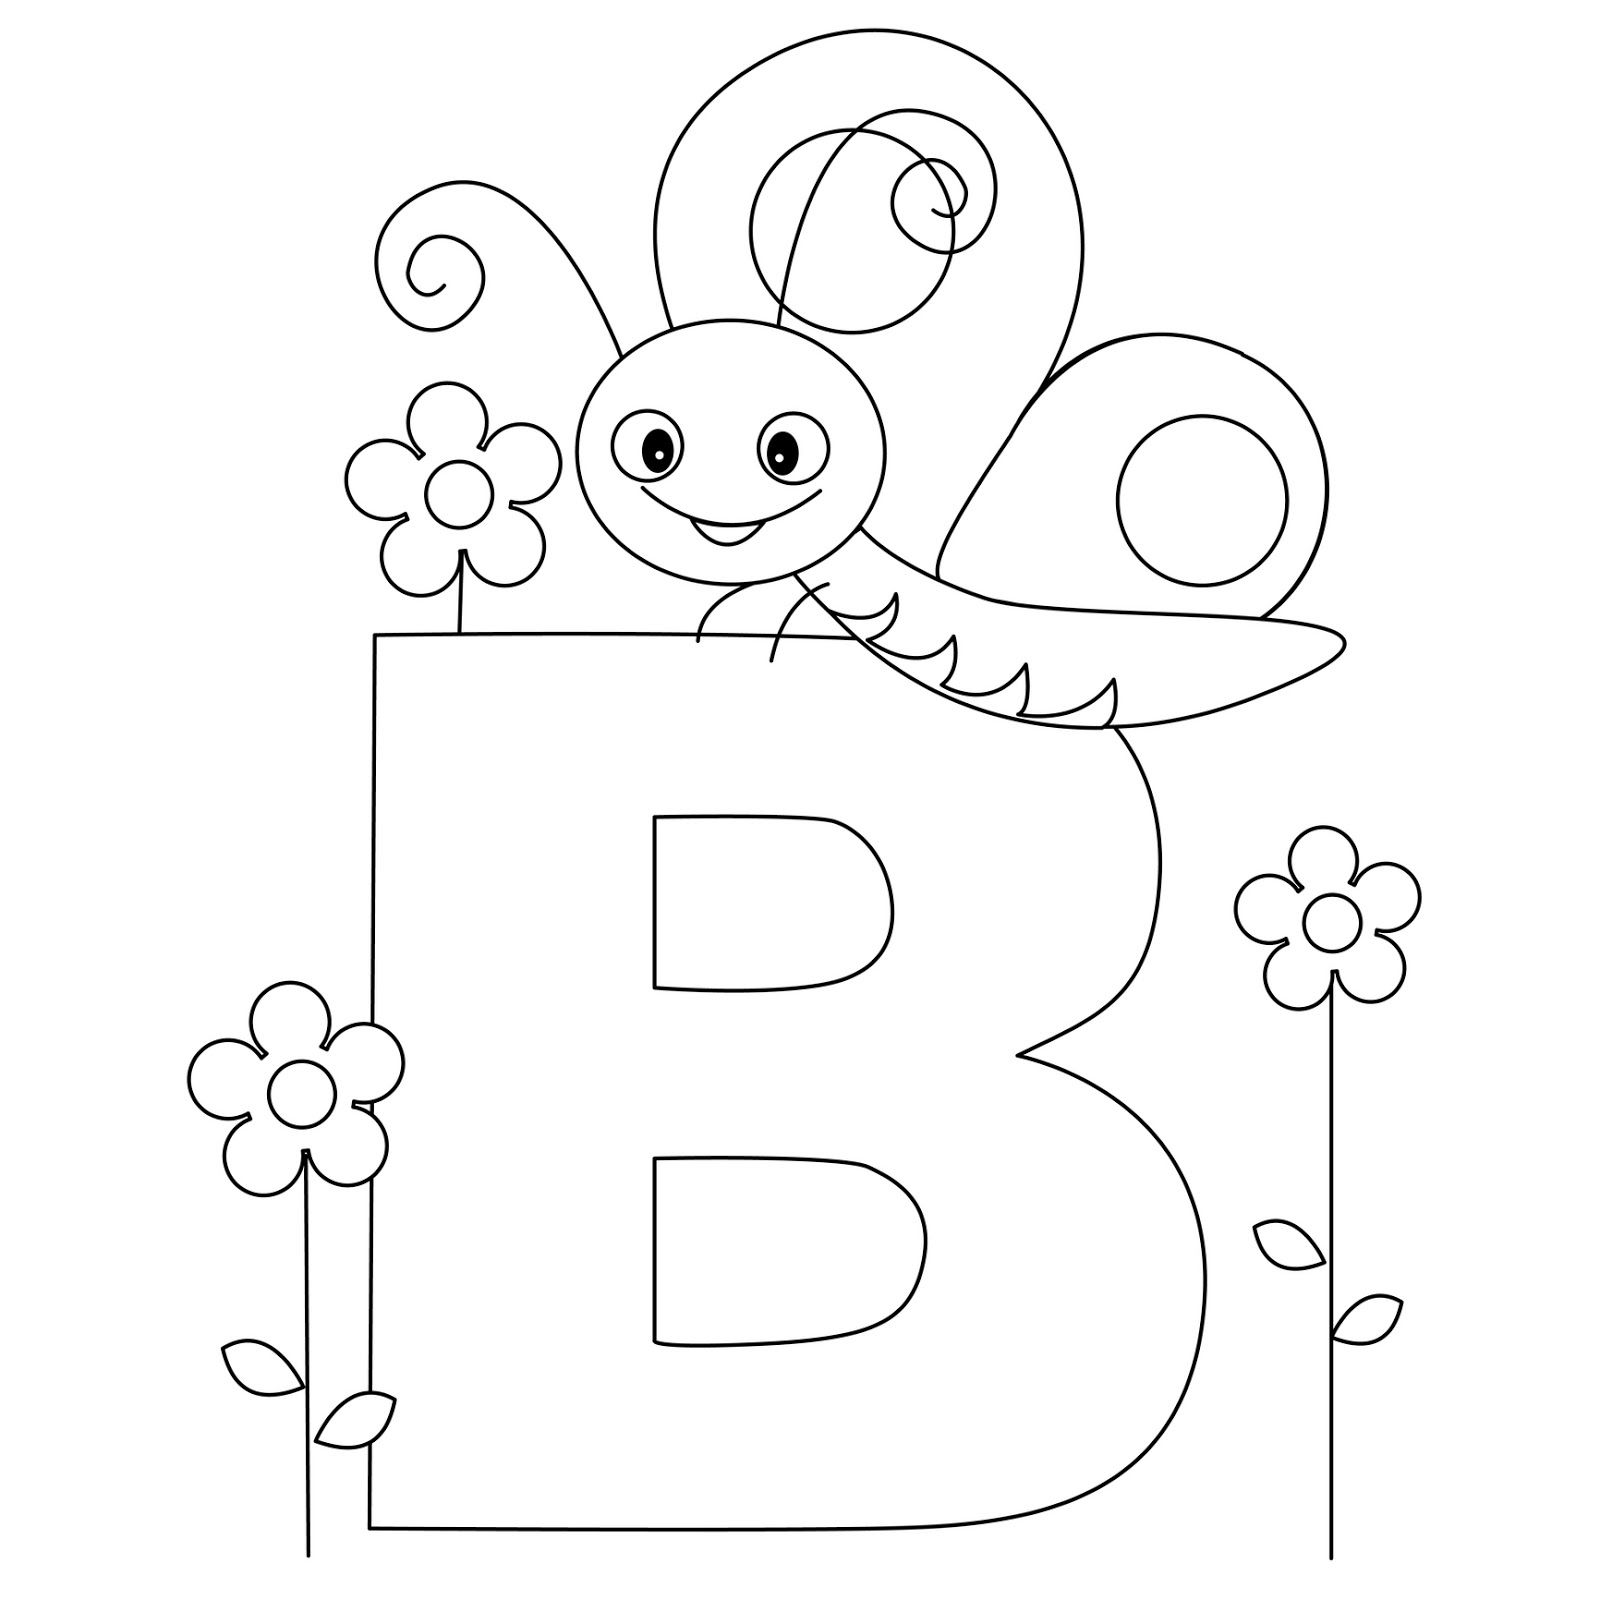 Preschool Coloring Pages And Worksheets